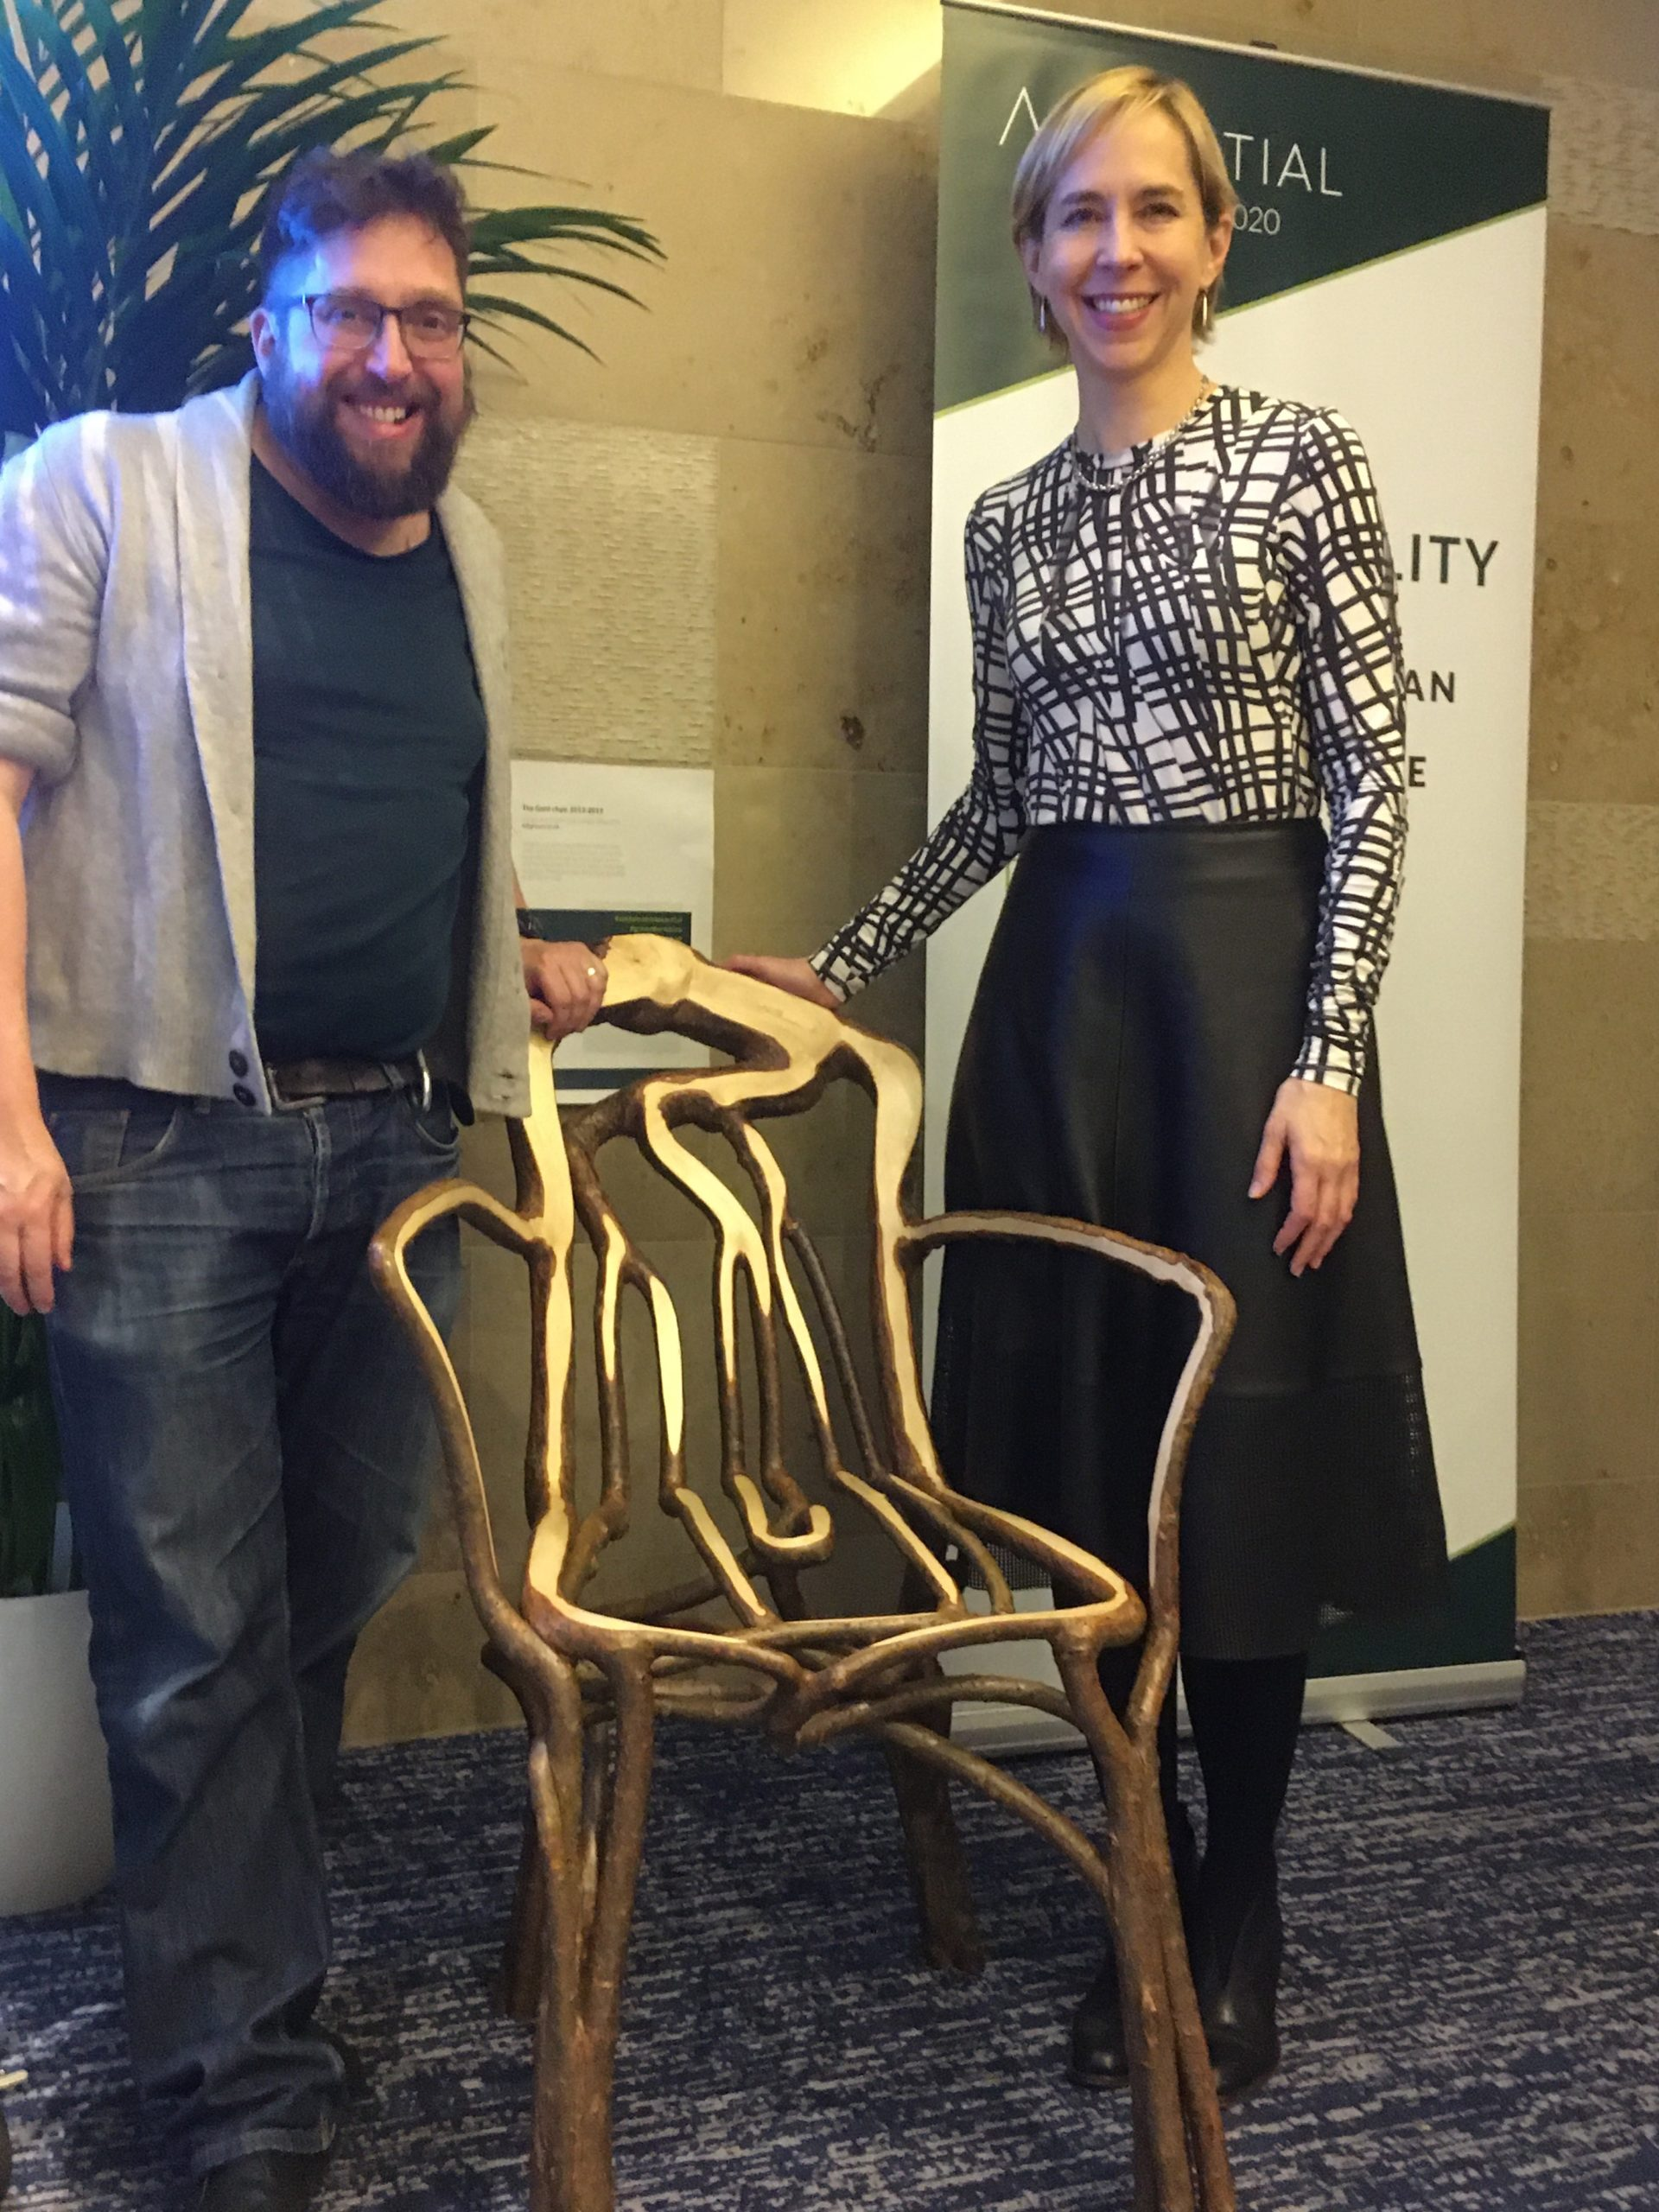 2020-01 12of13 - Fg talk at Ascential Conference - The Gatti Chair - Gavin and Lisa White Director of Lifestyle and Interiors WGSN